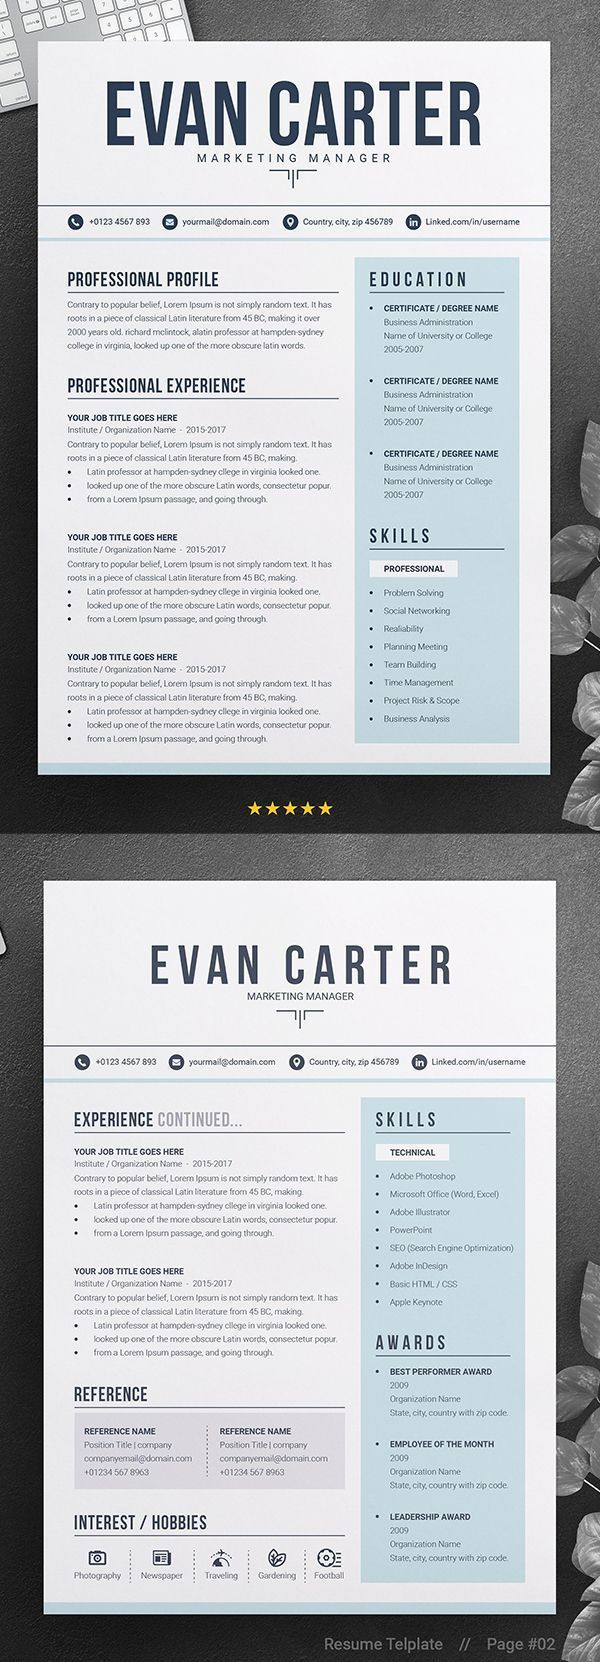 Free Resume Templates 2018 Free Creative Resume Templates